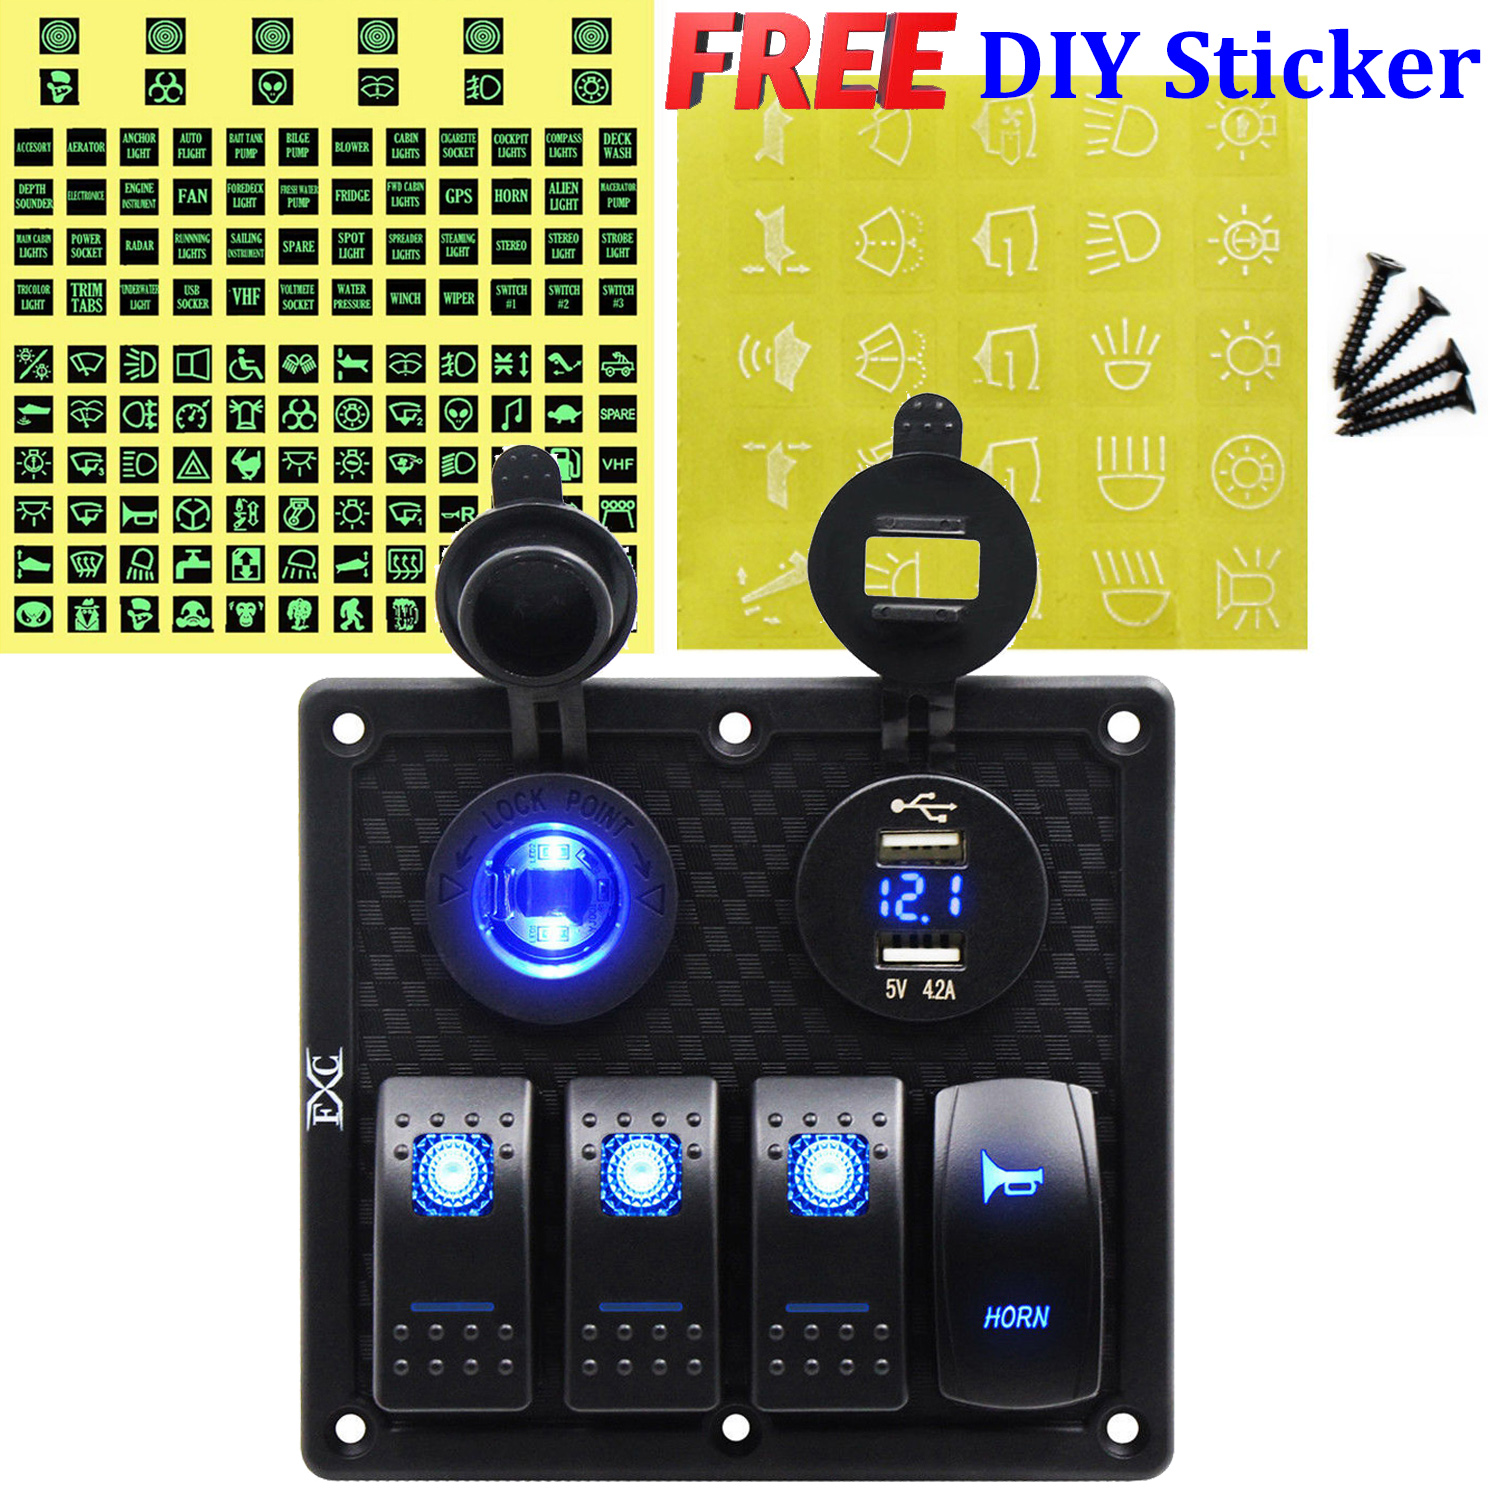 Marine Rated Light Pump Power Rocker Switch 12v 24v illuminated Led WaterProof